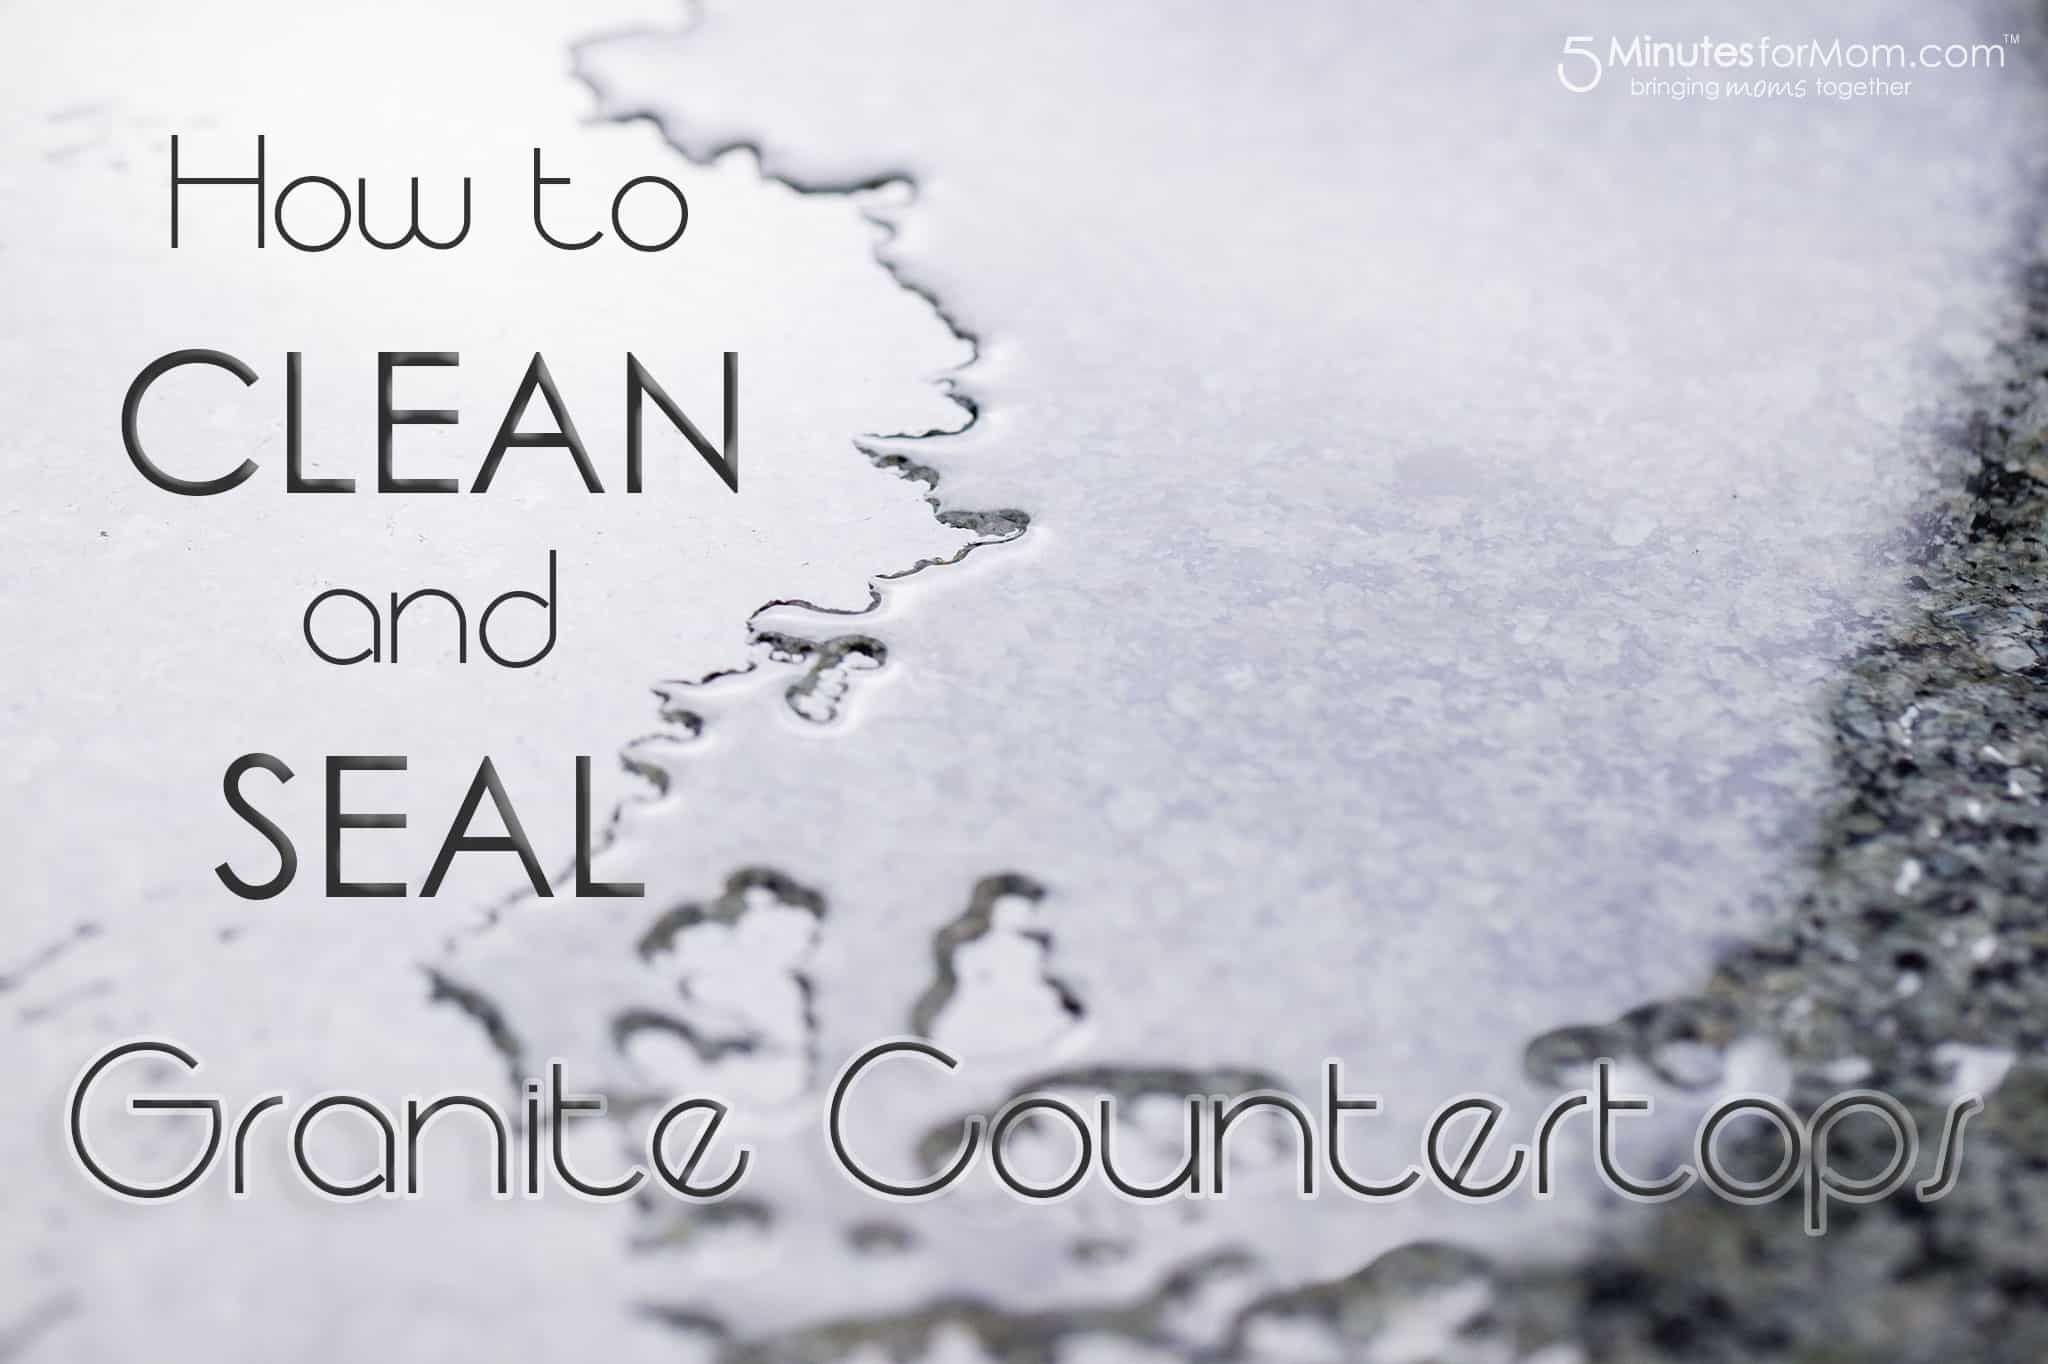 Natural Way To Clean Granite Countertops How To Clean And Seal Your Granite Countertop